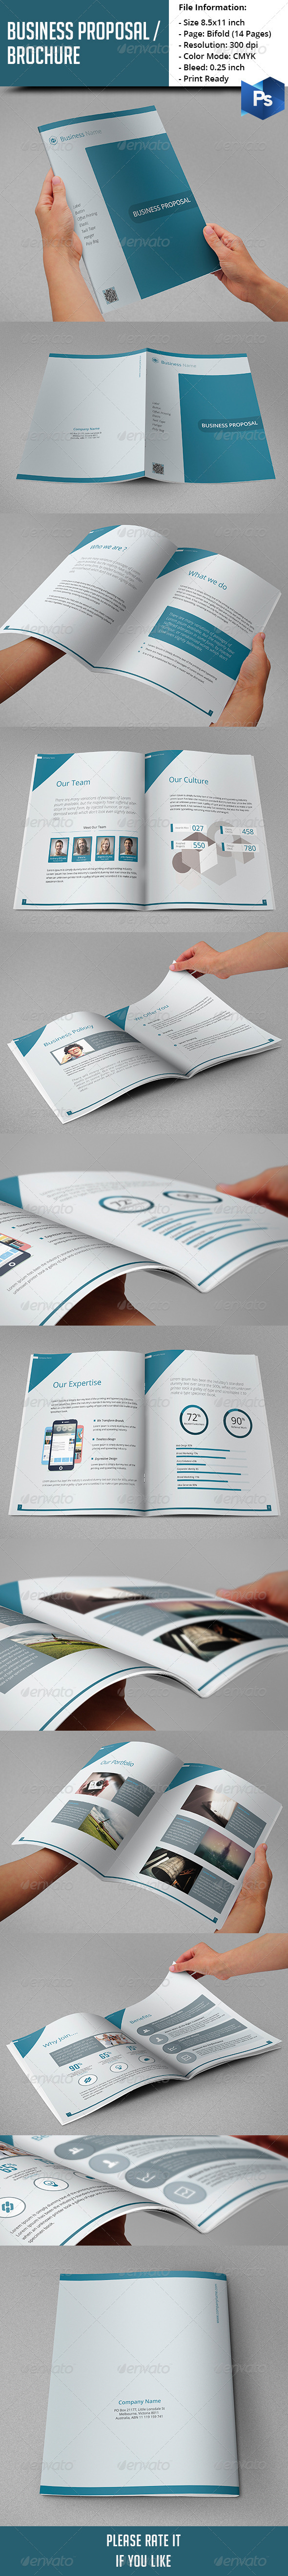 GraphicRiver Business Proposal Brochure 8178834